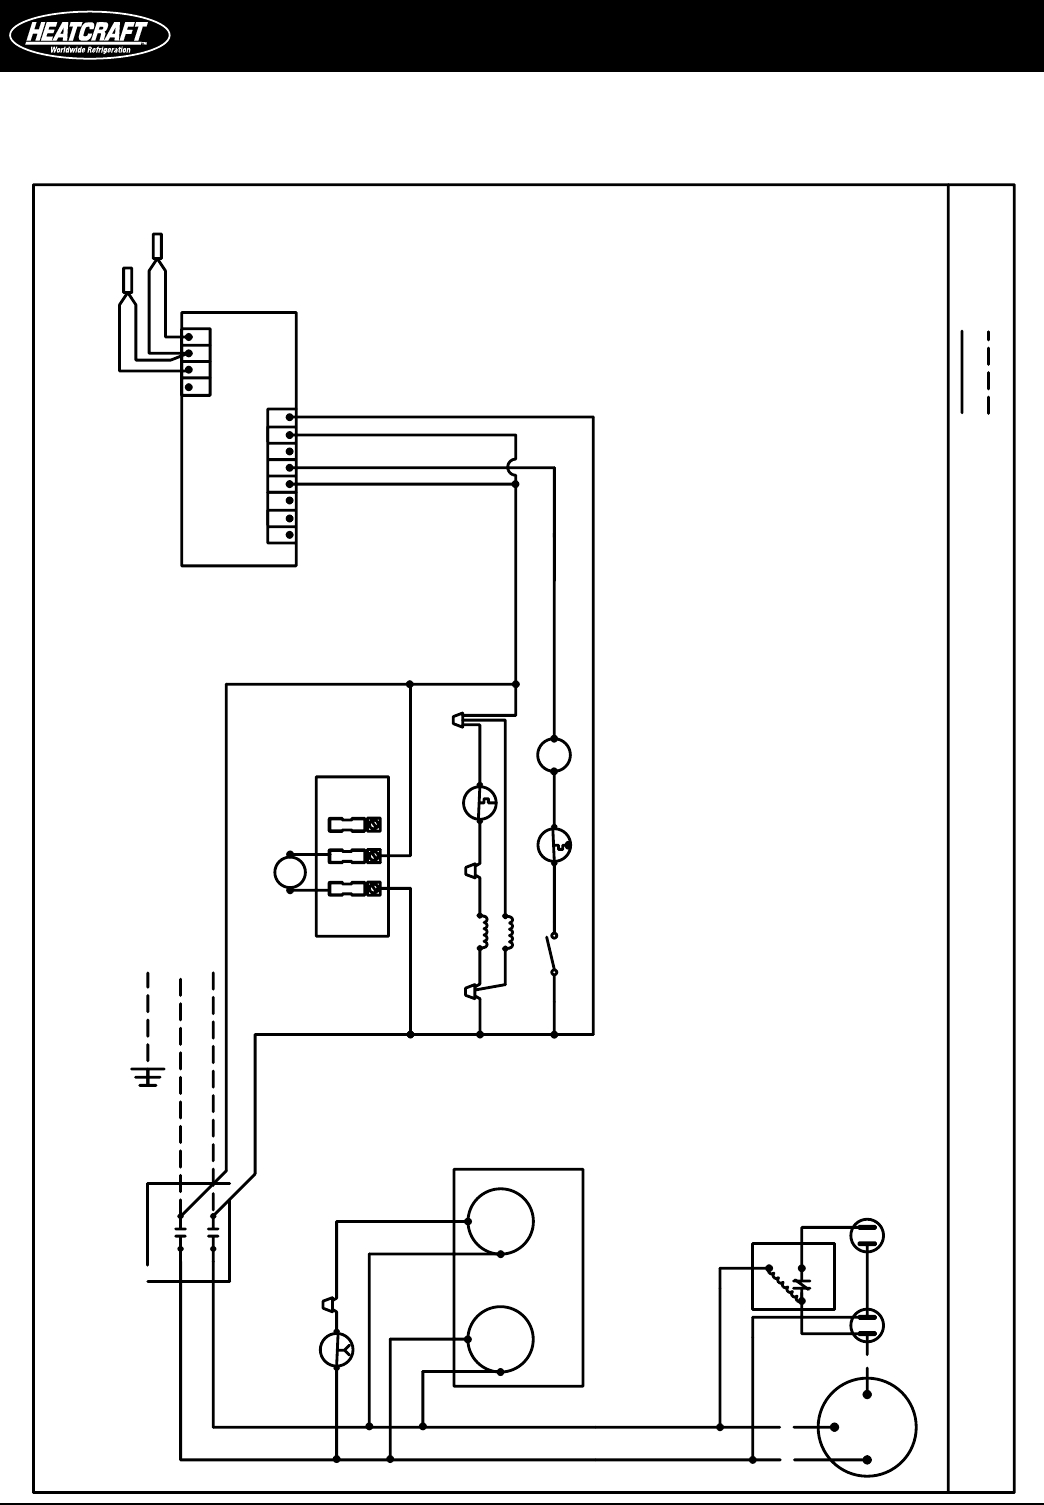 heatcraft walk in freezer wiring diagram Collection-Heatcraft Freezer Wiring Diagram 1-b